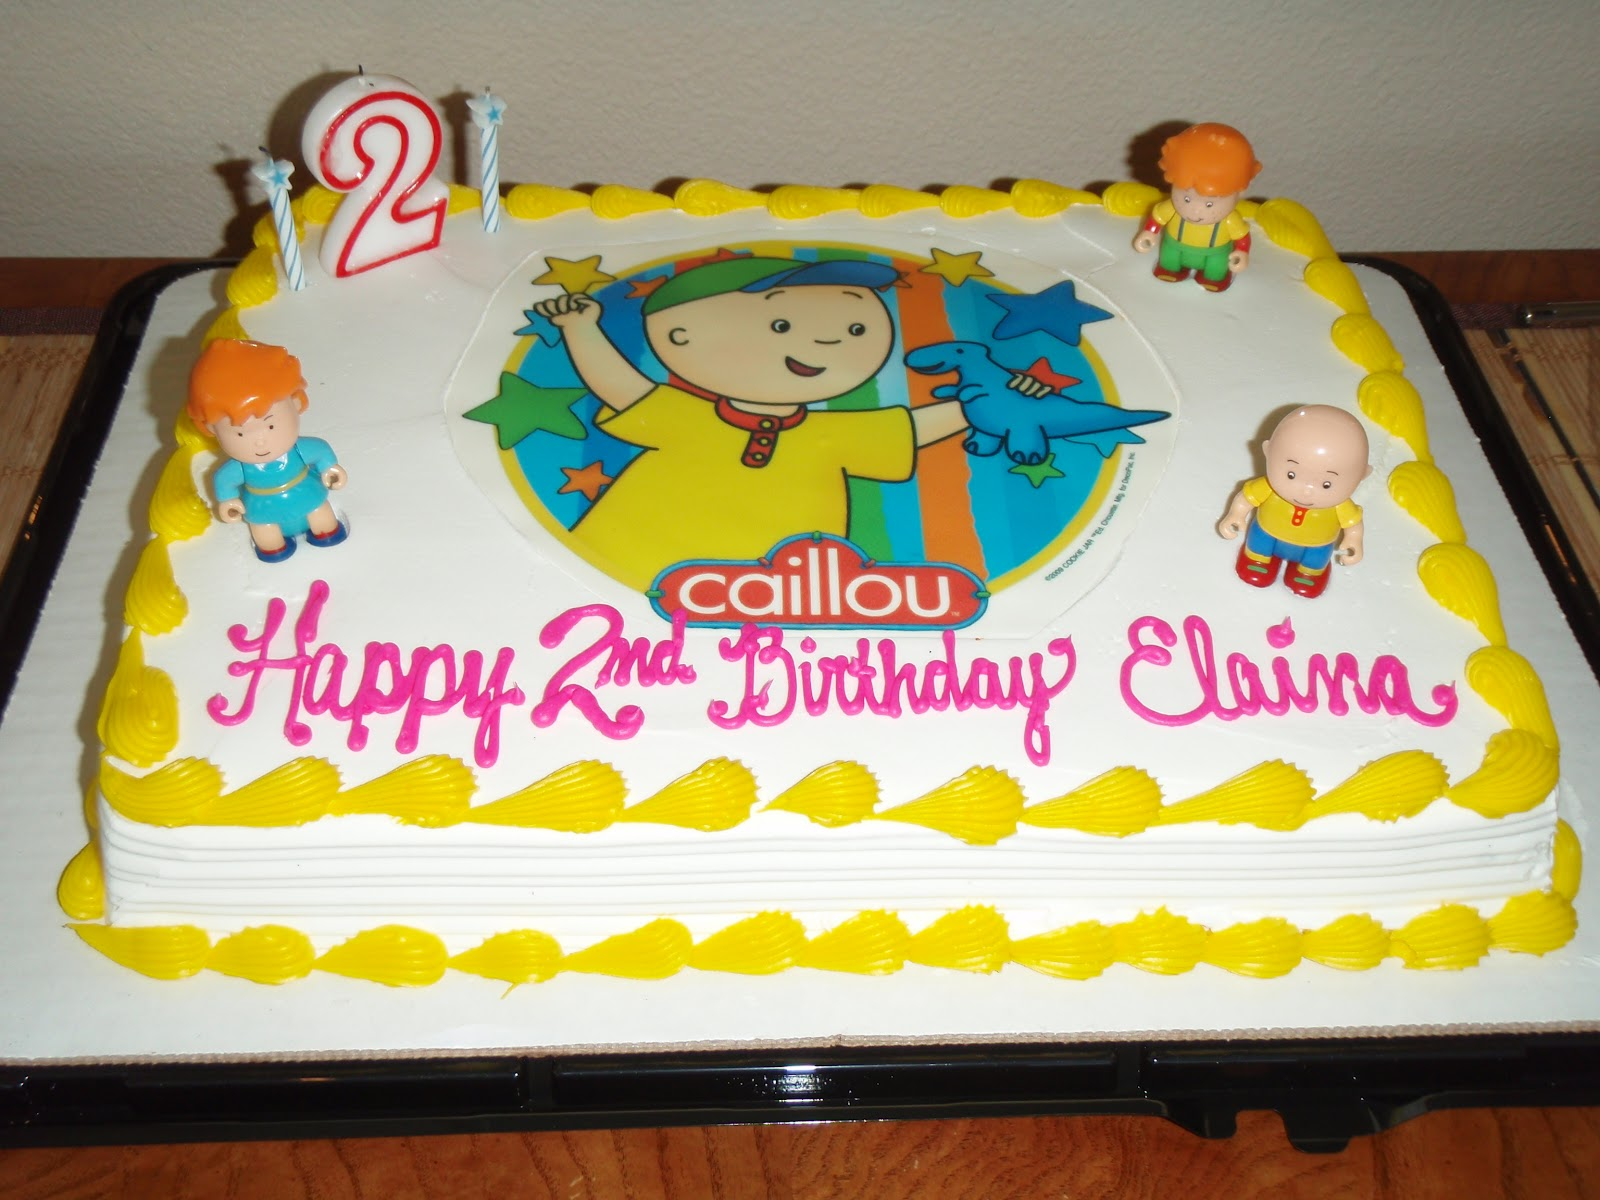 Scrumptious Sweets A Caillou Cake For Boys 2nd Birthday Party